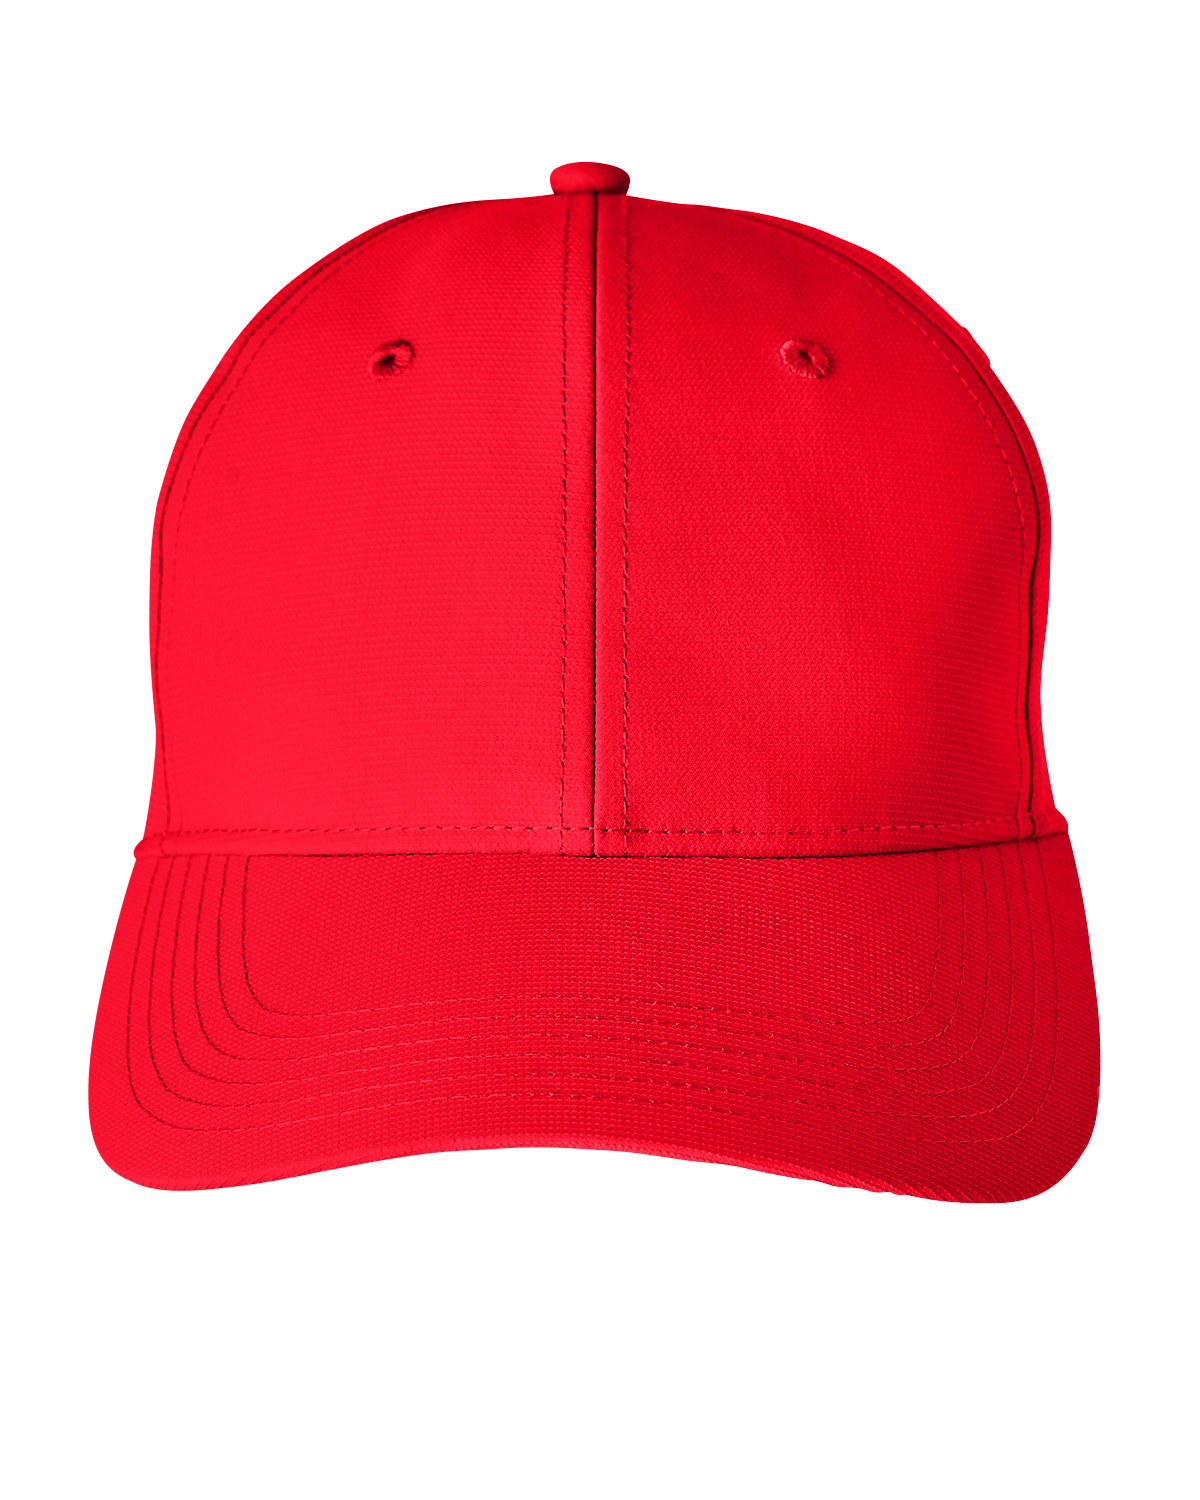 Puma Golf Adult Pounce Adjustable Cap HIGH RISK RED